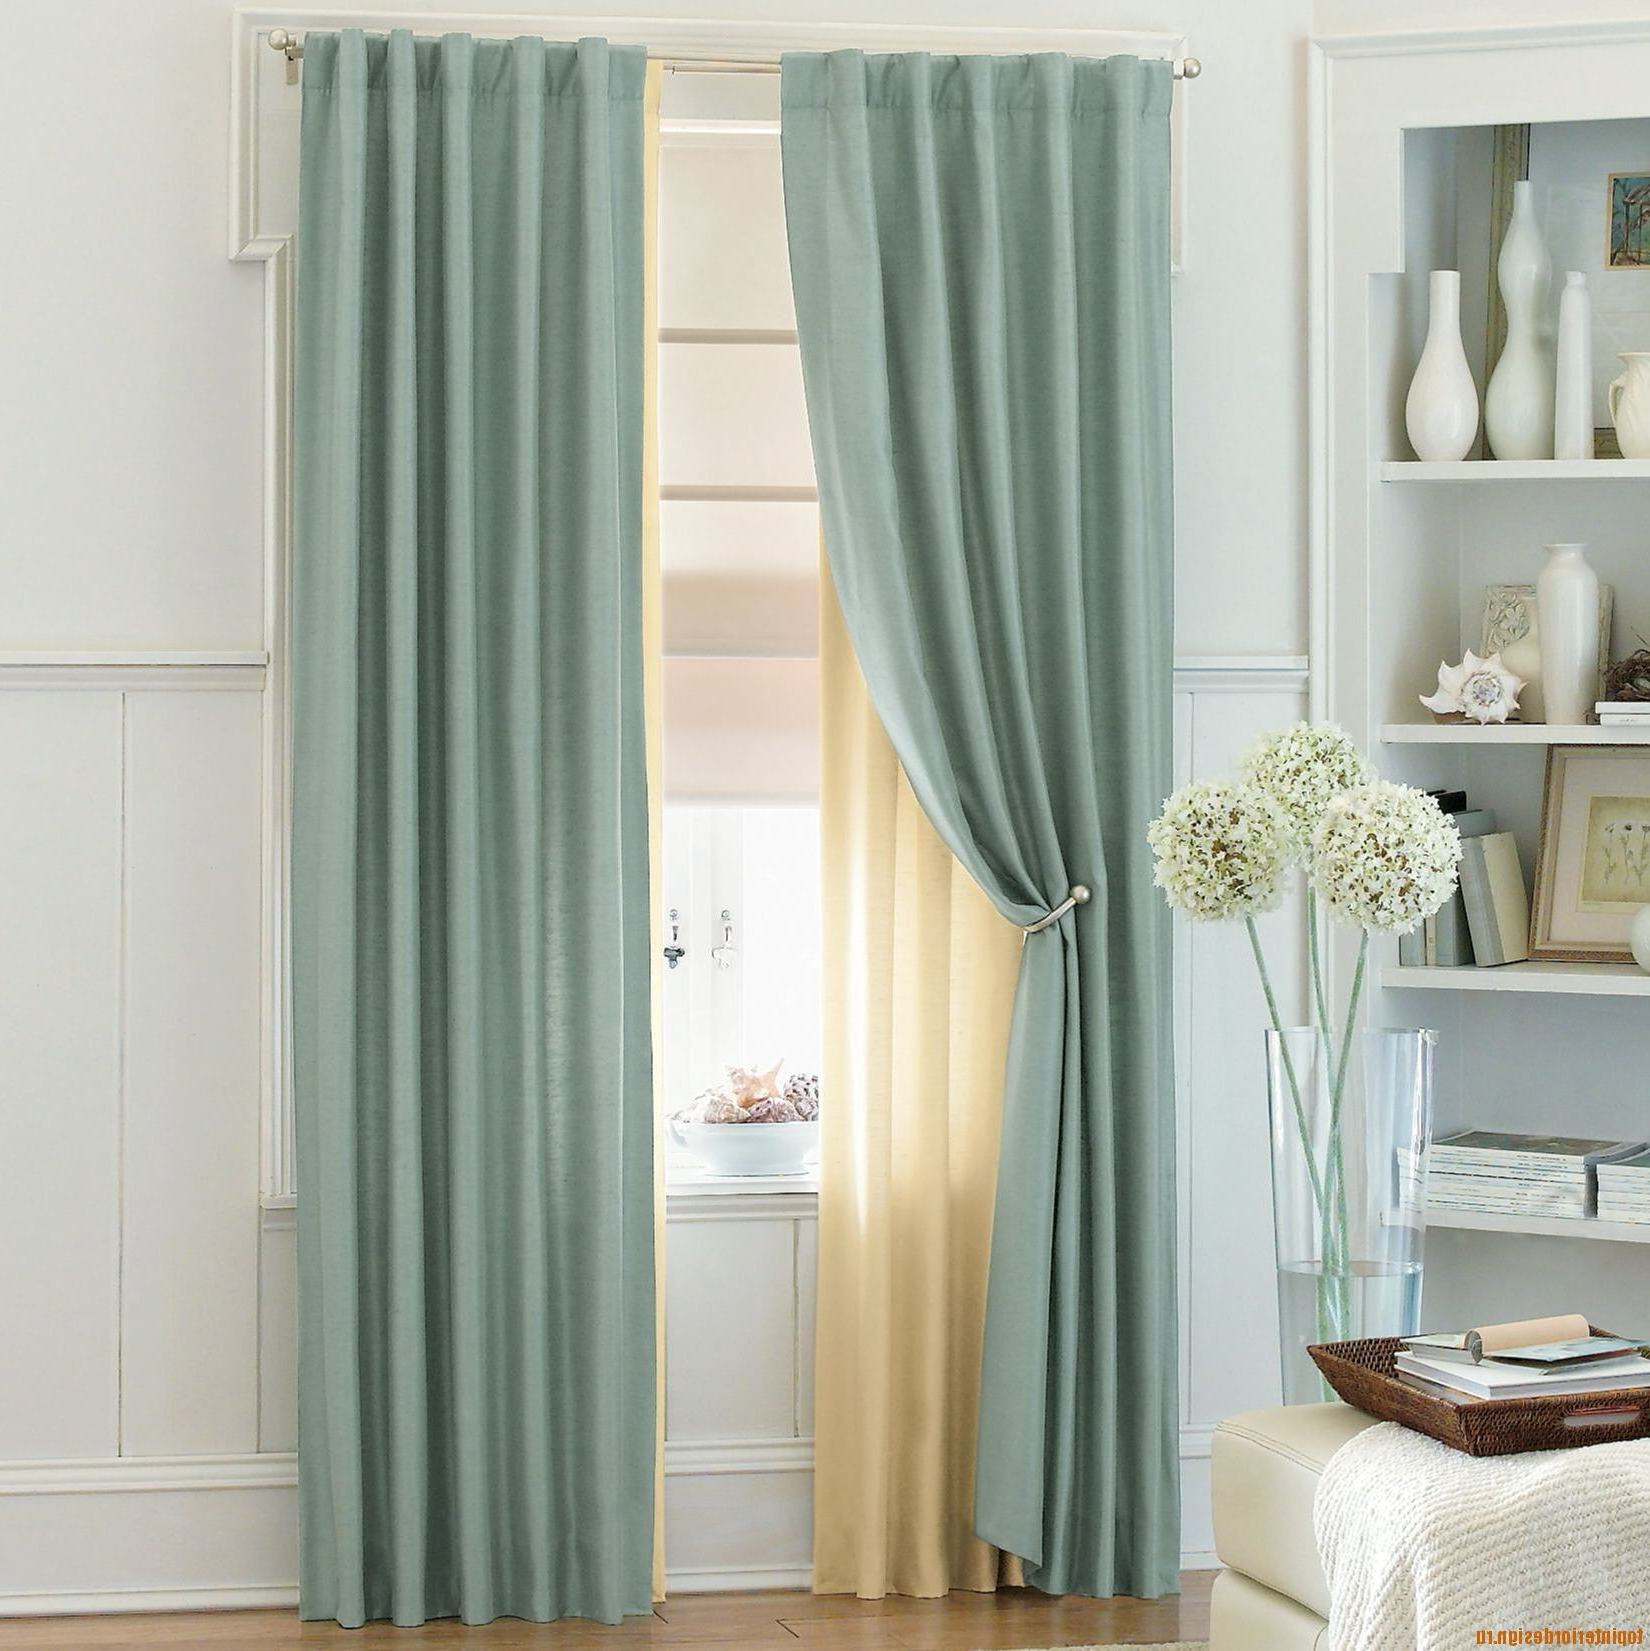 2017 06 types of curtains -  Best Modern Beige Curtain Pictures Of Living Rooms